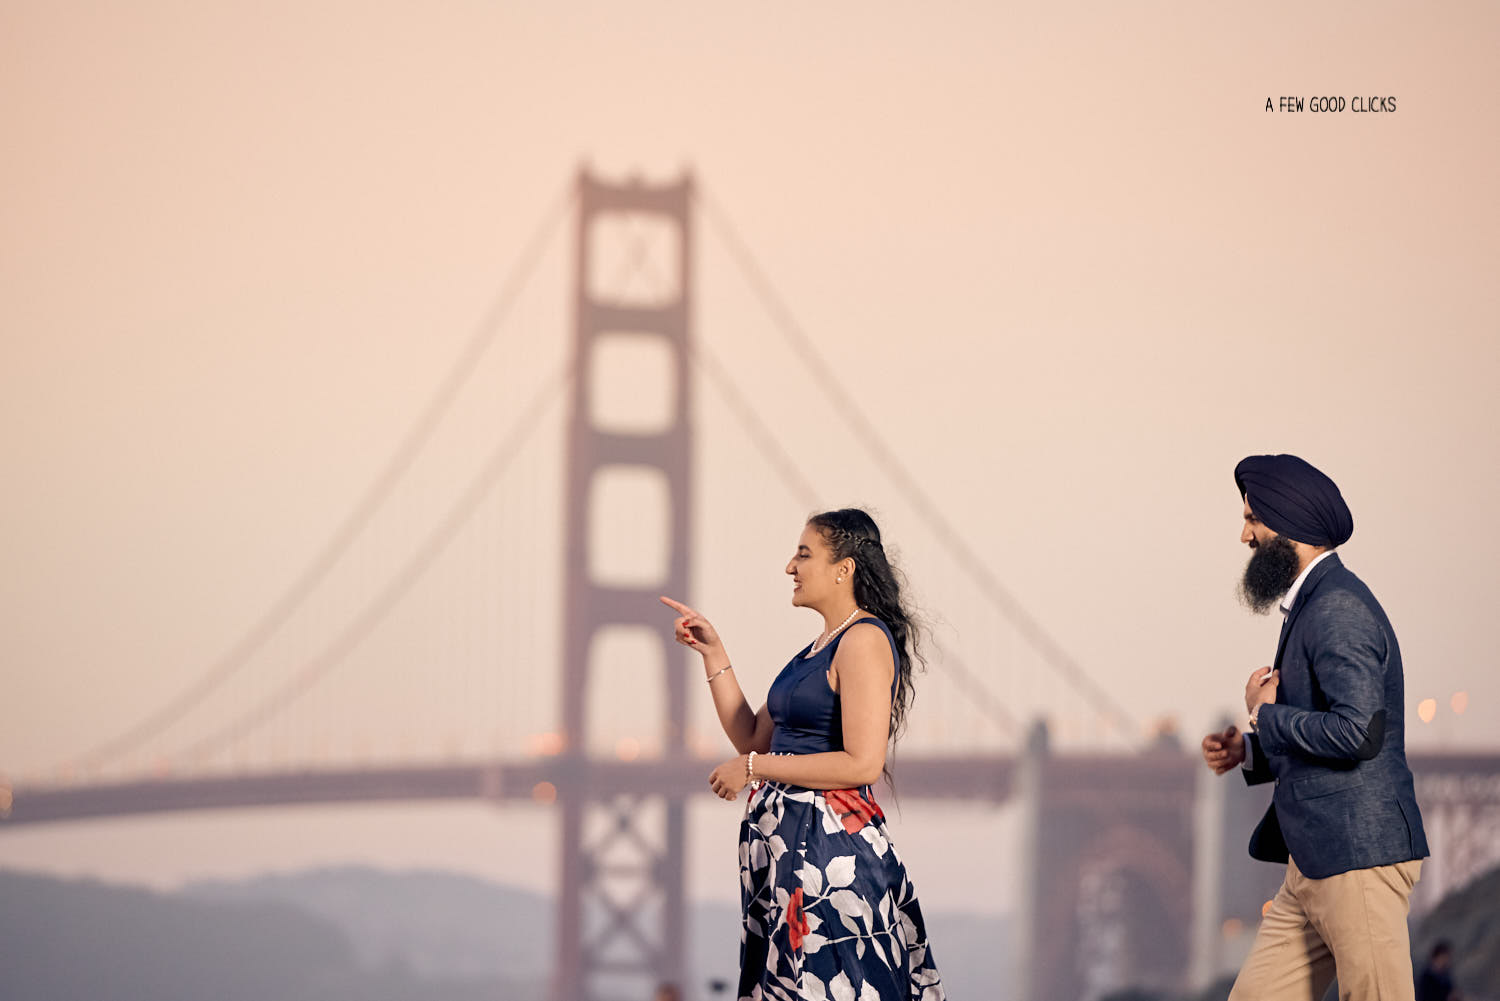 bakers-beach-engagement-session-photography-san-francisco 18.jpg